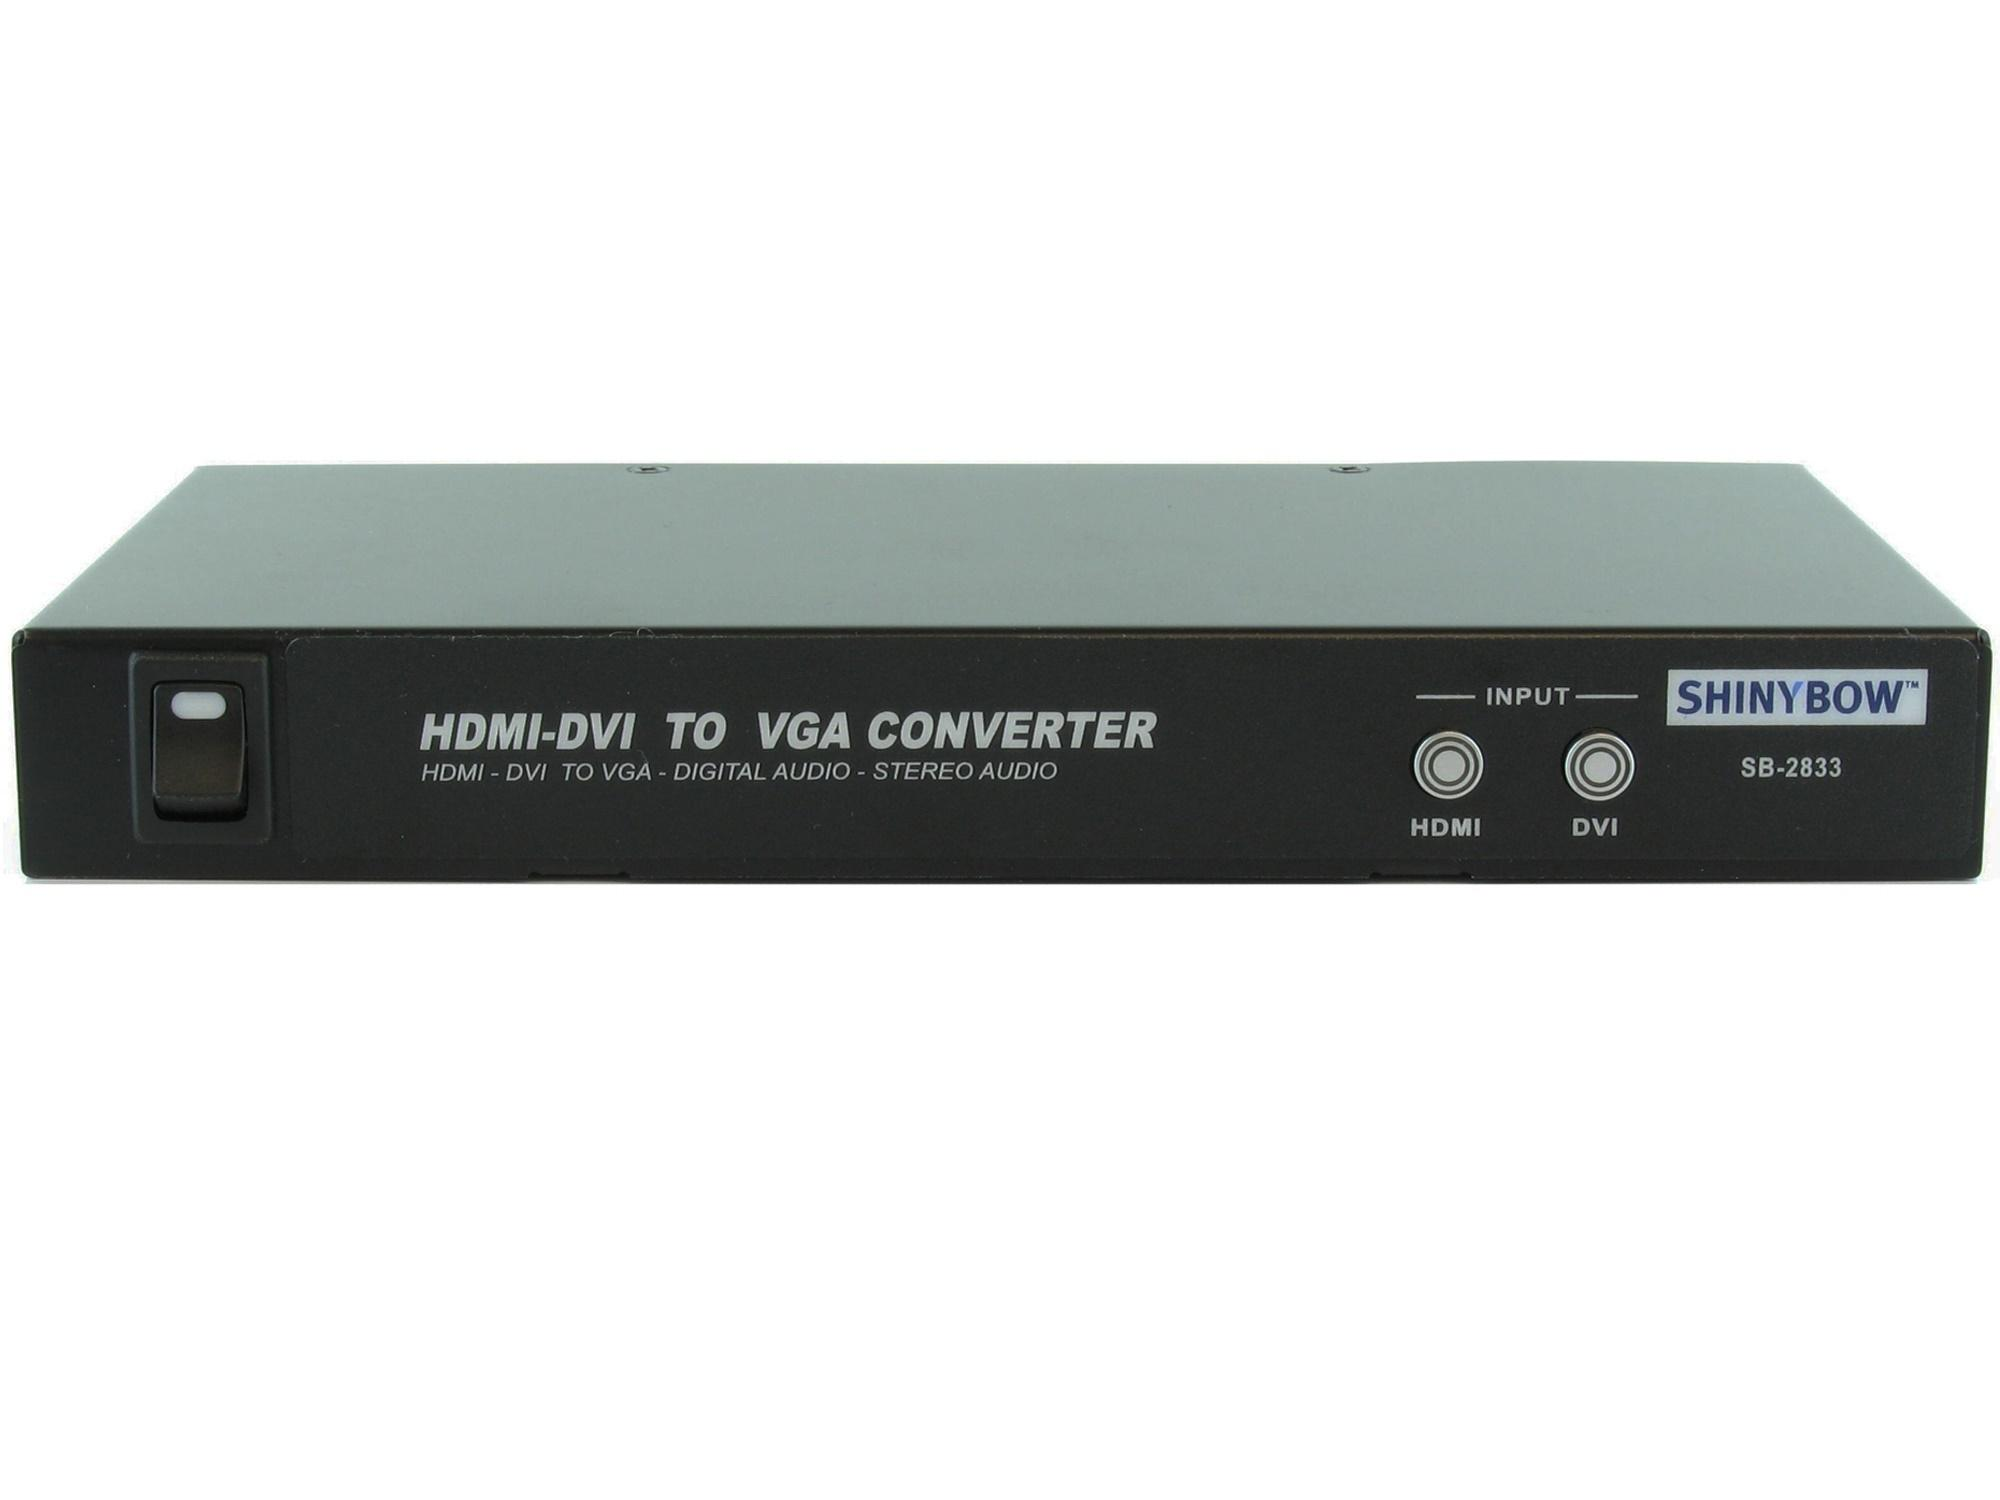 SB-2833 HDMI/DVI to VGA/Digital/Audio Converter by Shinybow